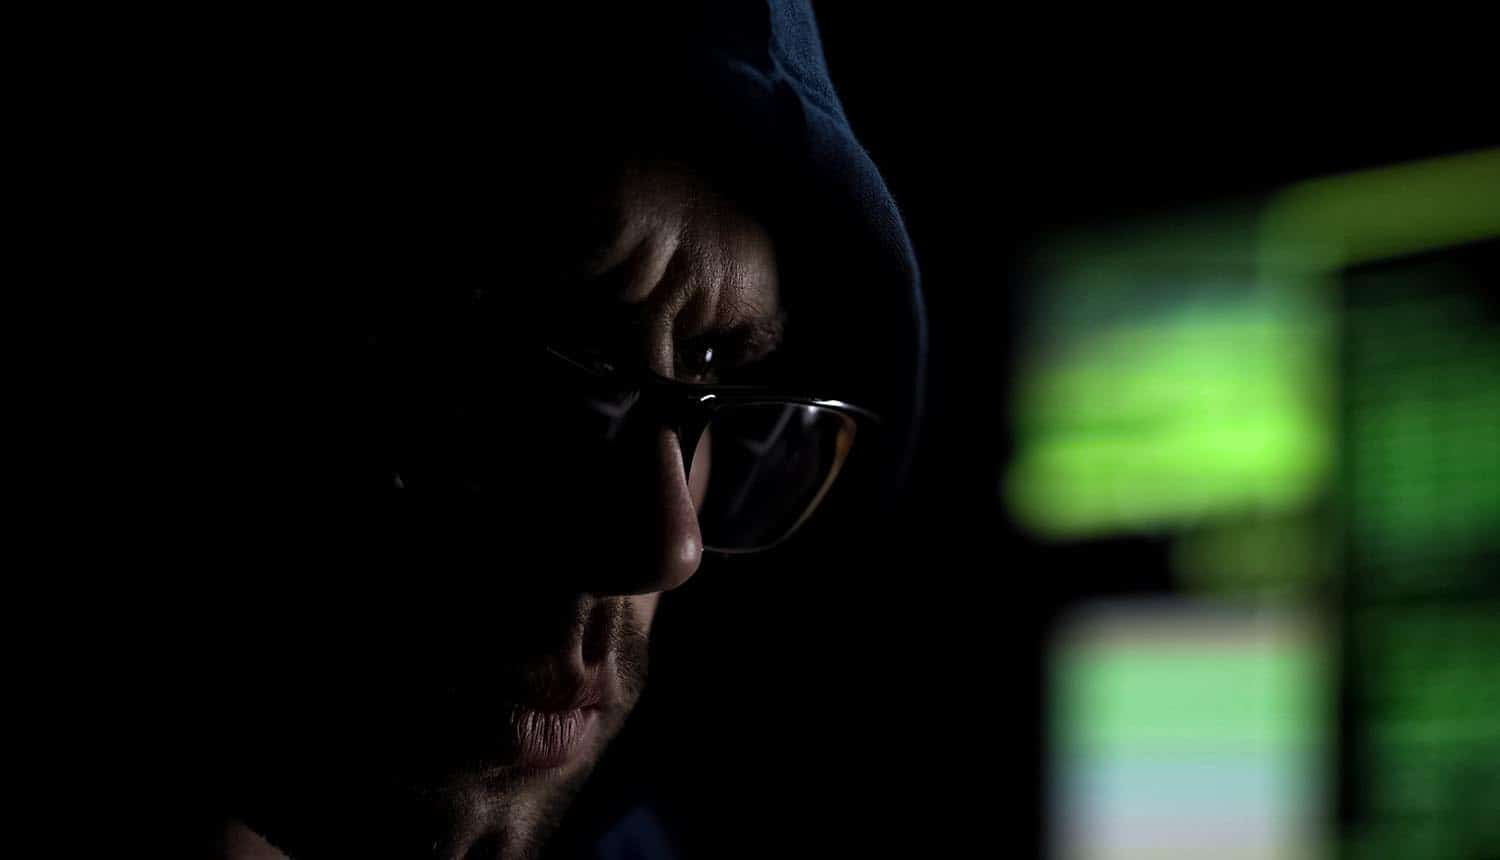 Hacker in glasses looking at screen showing cybercrime gangs promise to stop attacks on healthcare organizations during coronavirus crisis